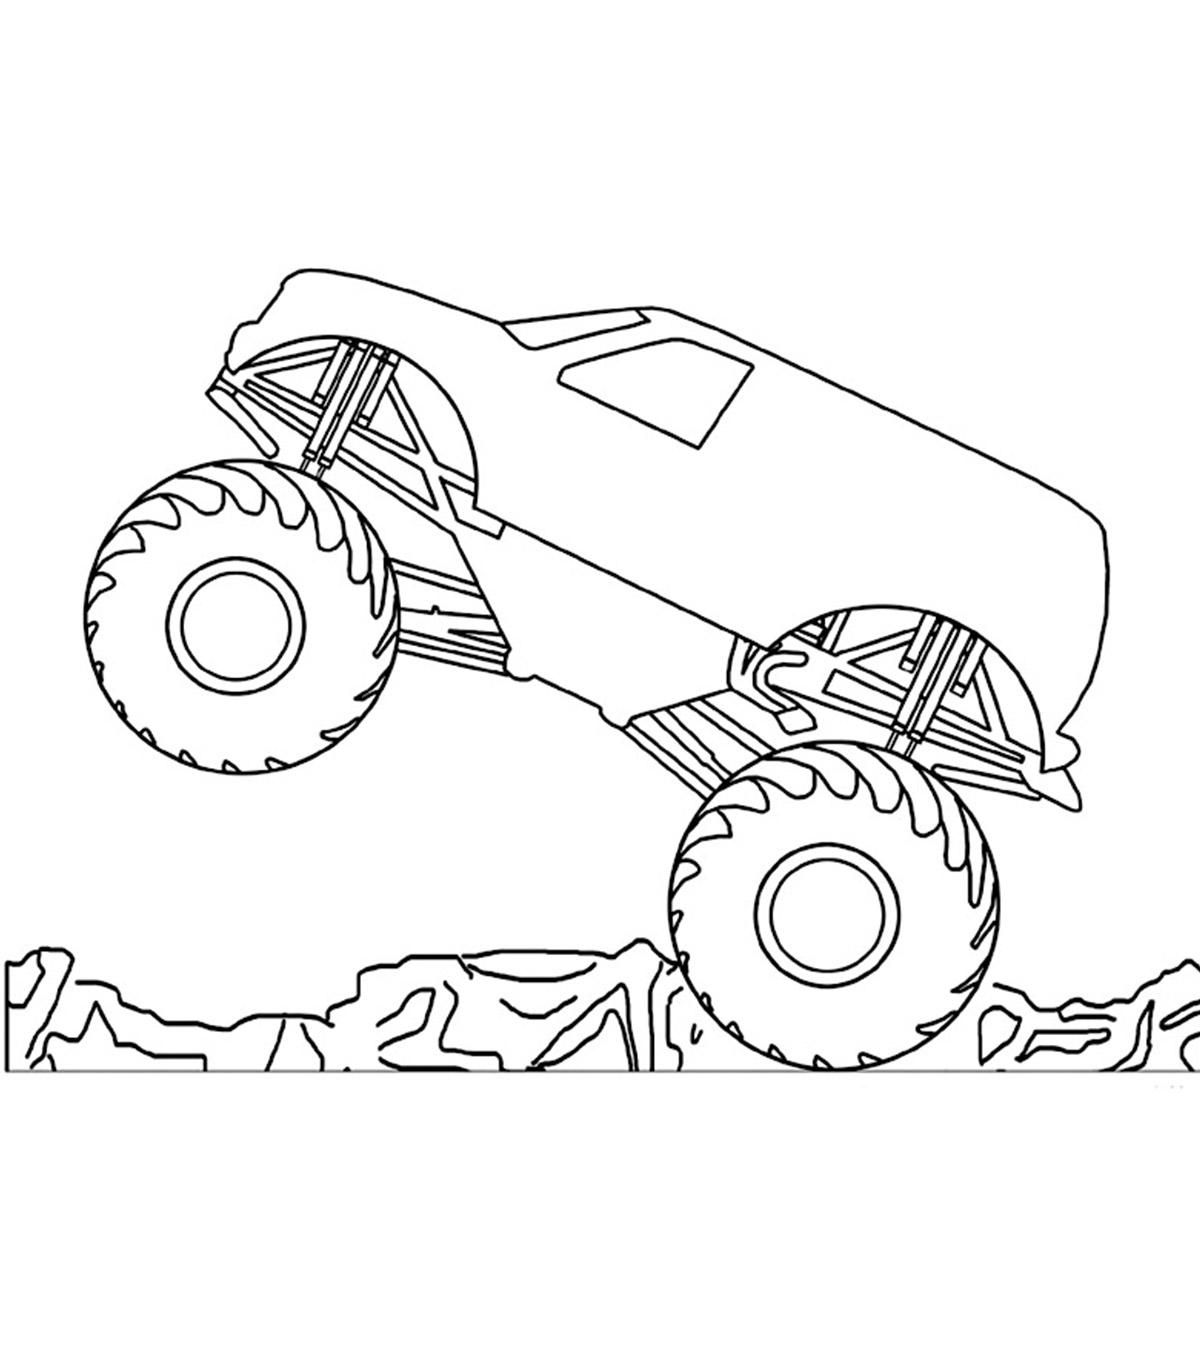 8 Coloring Page Monster Truck Monster Truck Coloring Pages Tractor Coloring Pages Truck Coloring Pages